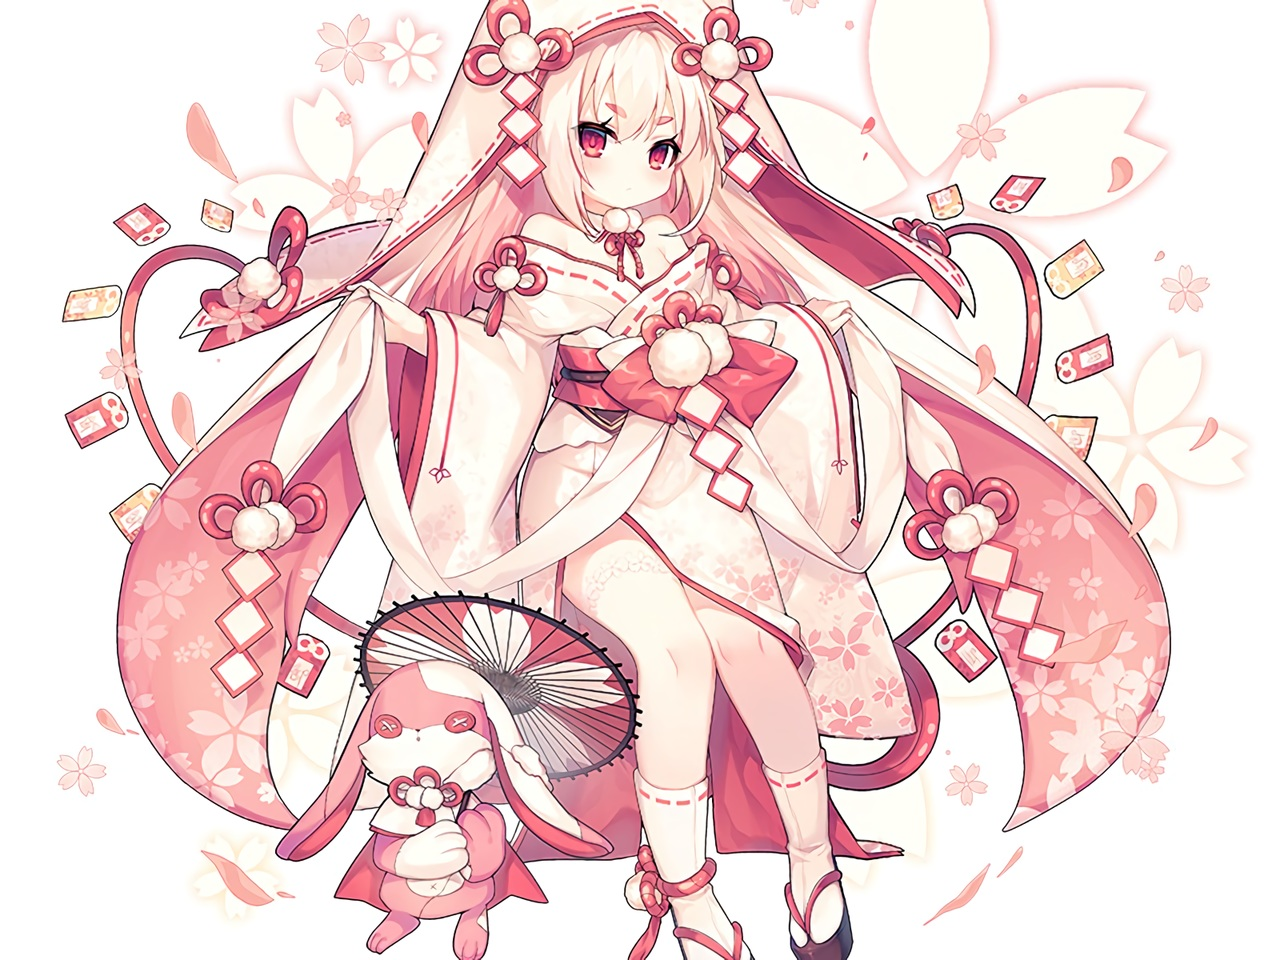 bunny cherry_blossoms cropped flowers hoodie japanese_clothes loli long_hair miko original pink polychromatic red_eyes socks umbrella utm waifu2x white white_hair